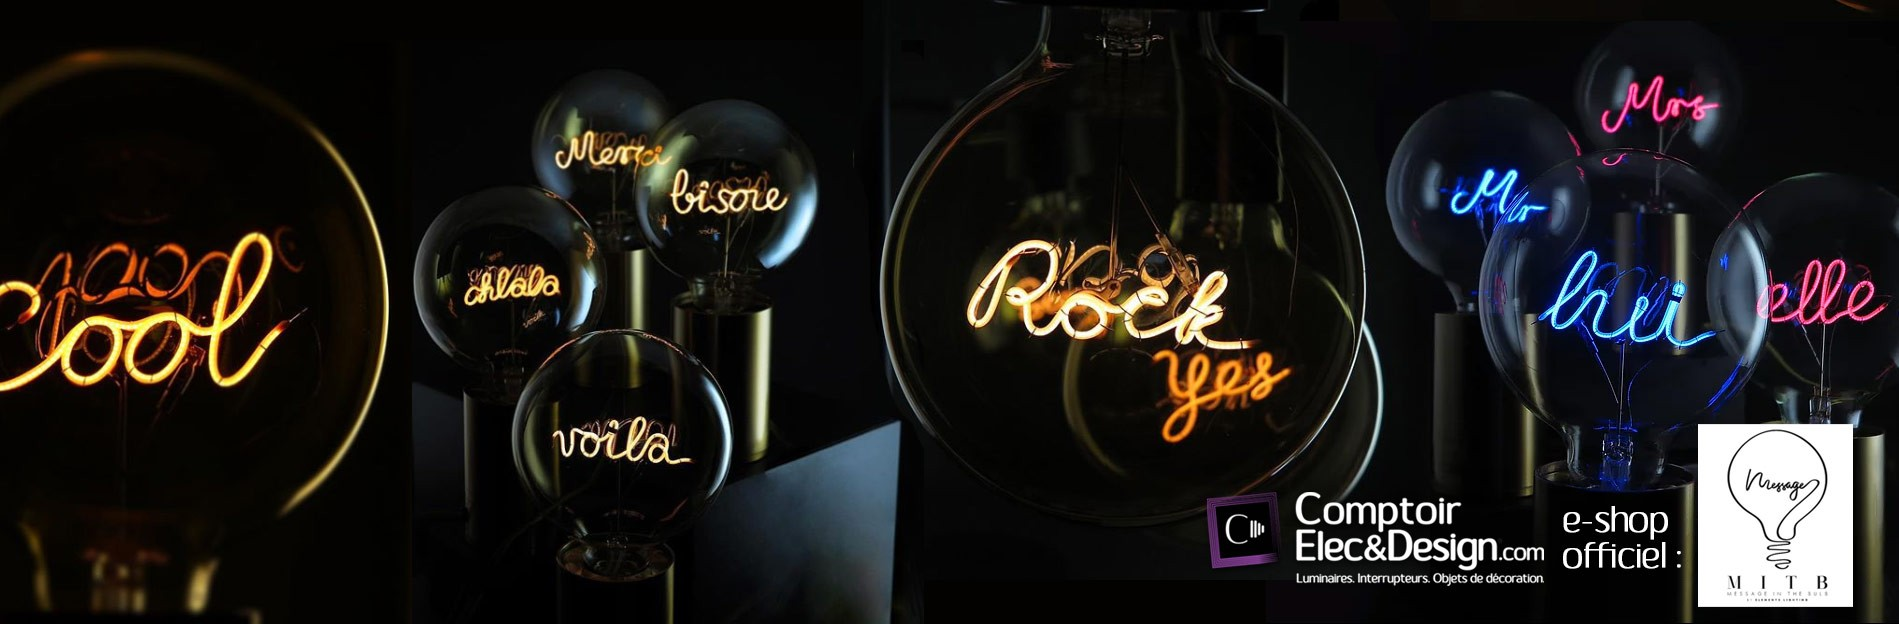 Message In The Bulb en vente sur Comptoir Elec & Design ®, e-shop officiel.